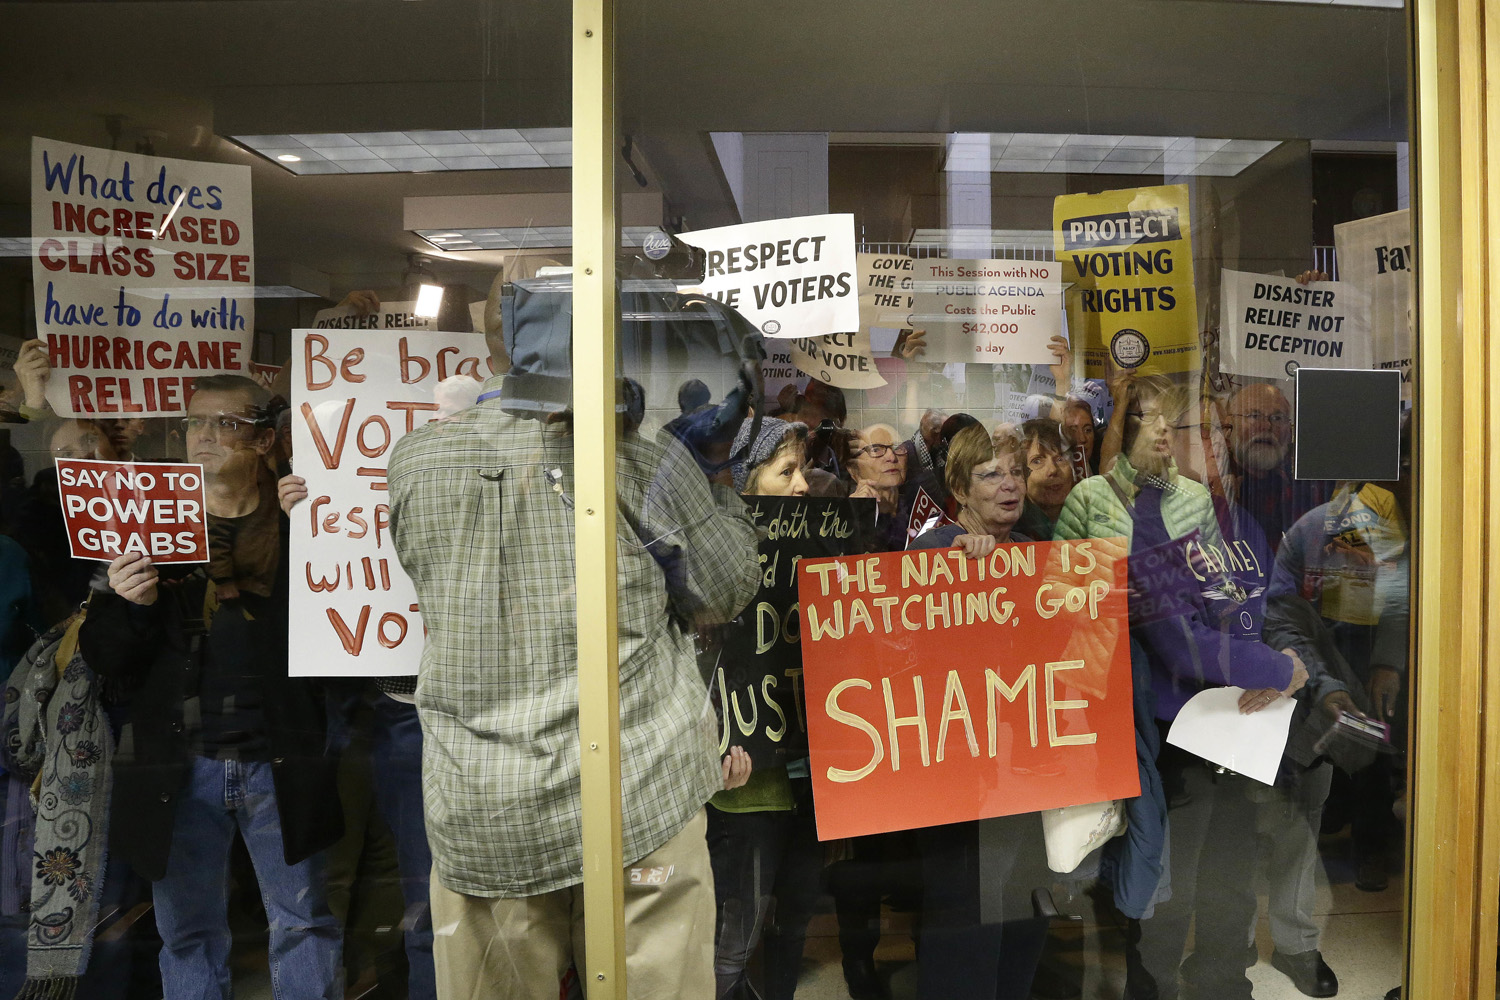 Protestors gather outside of a press conference room during a special session at the North Carolina Legislature in Raleigh, N.C., Thursday, Dec. 15, 2016. (Gerry Broome/AP)